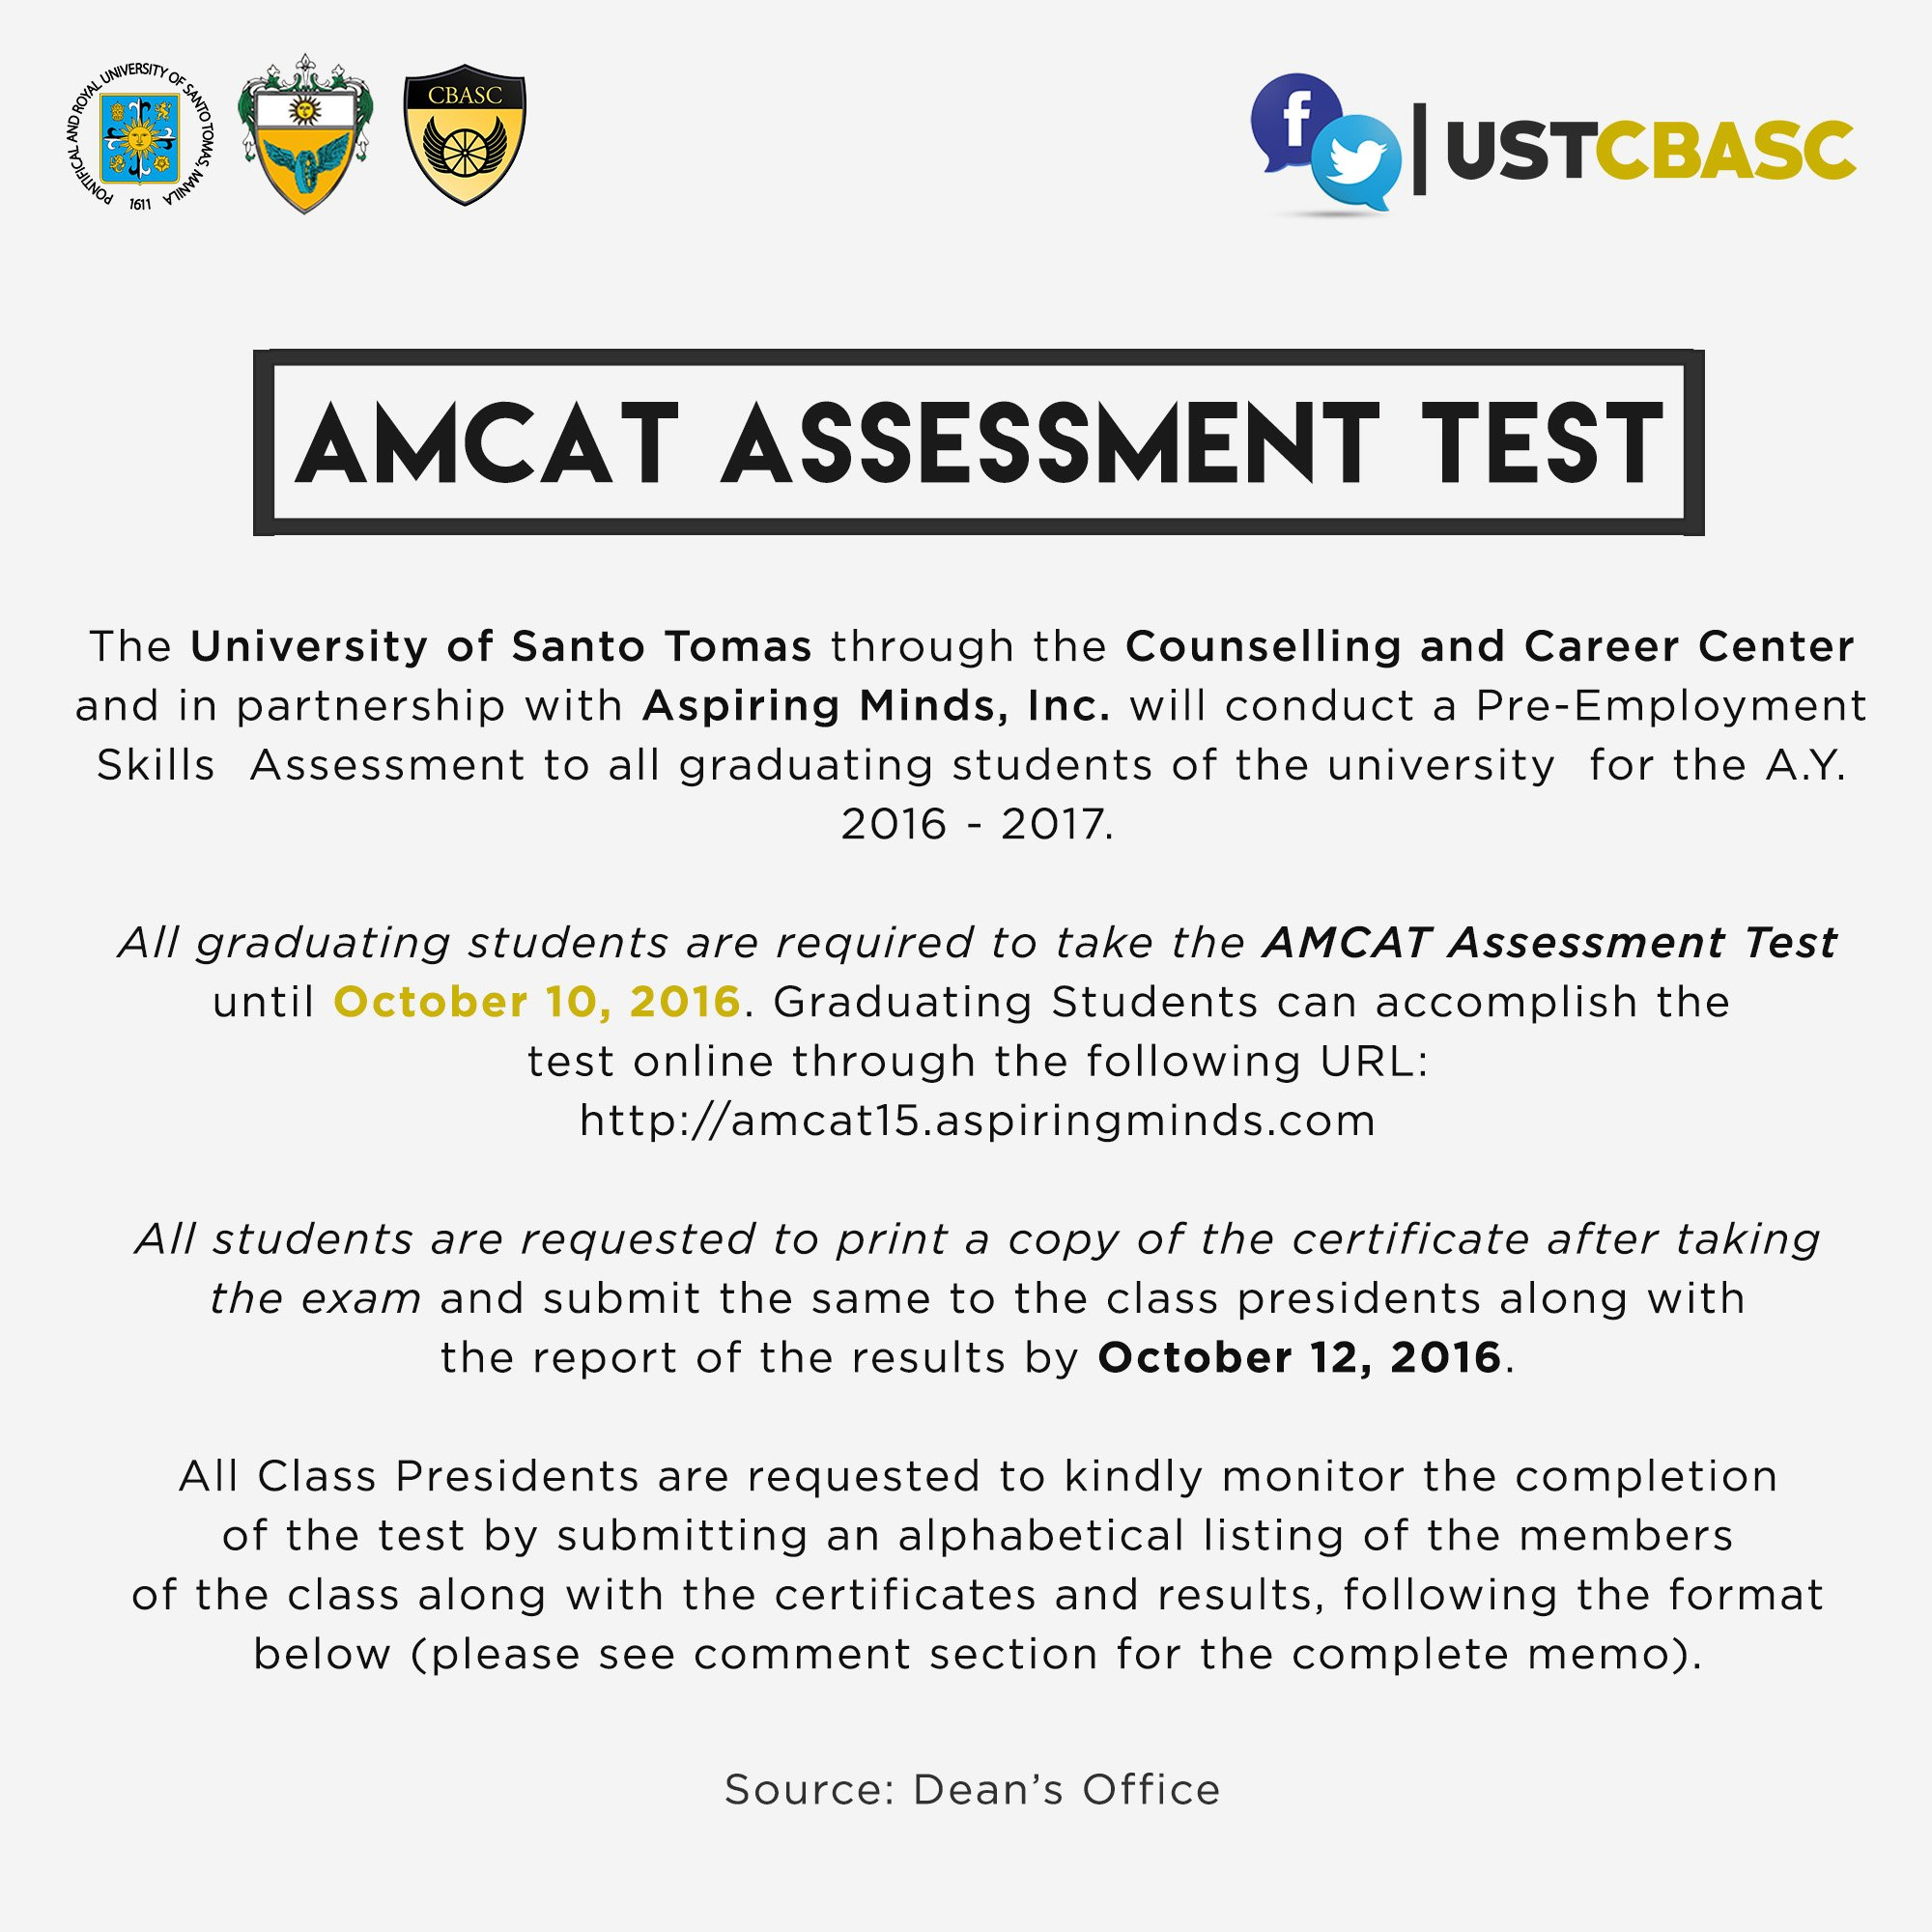 ust cbasc on cbascadvisory amcat assessment test ust cbasc on cbascadvisory amcat assessment test graduating students please take note full details t co 5yghfdnpgl